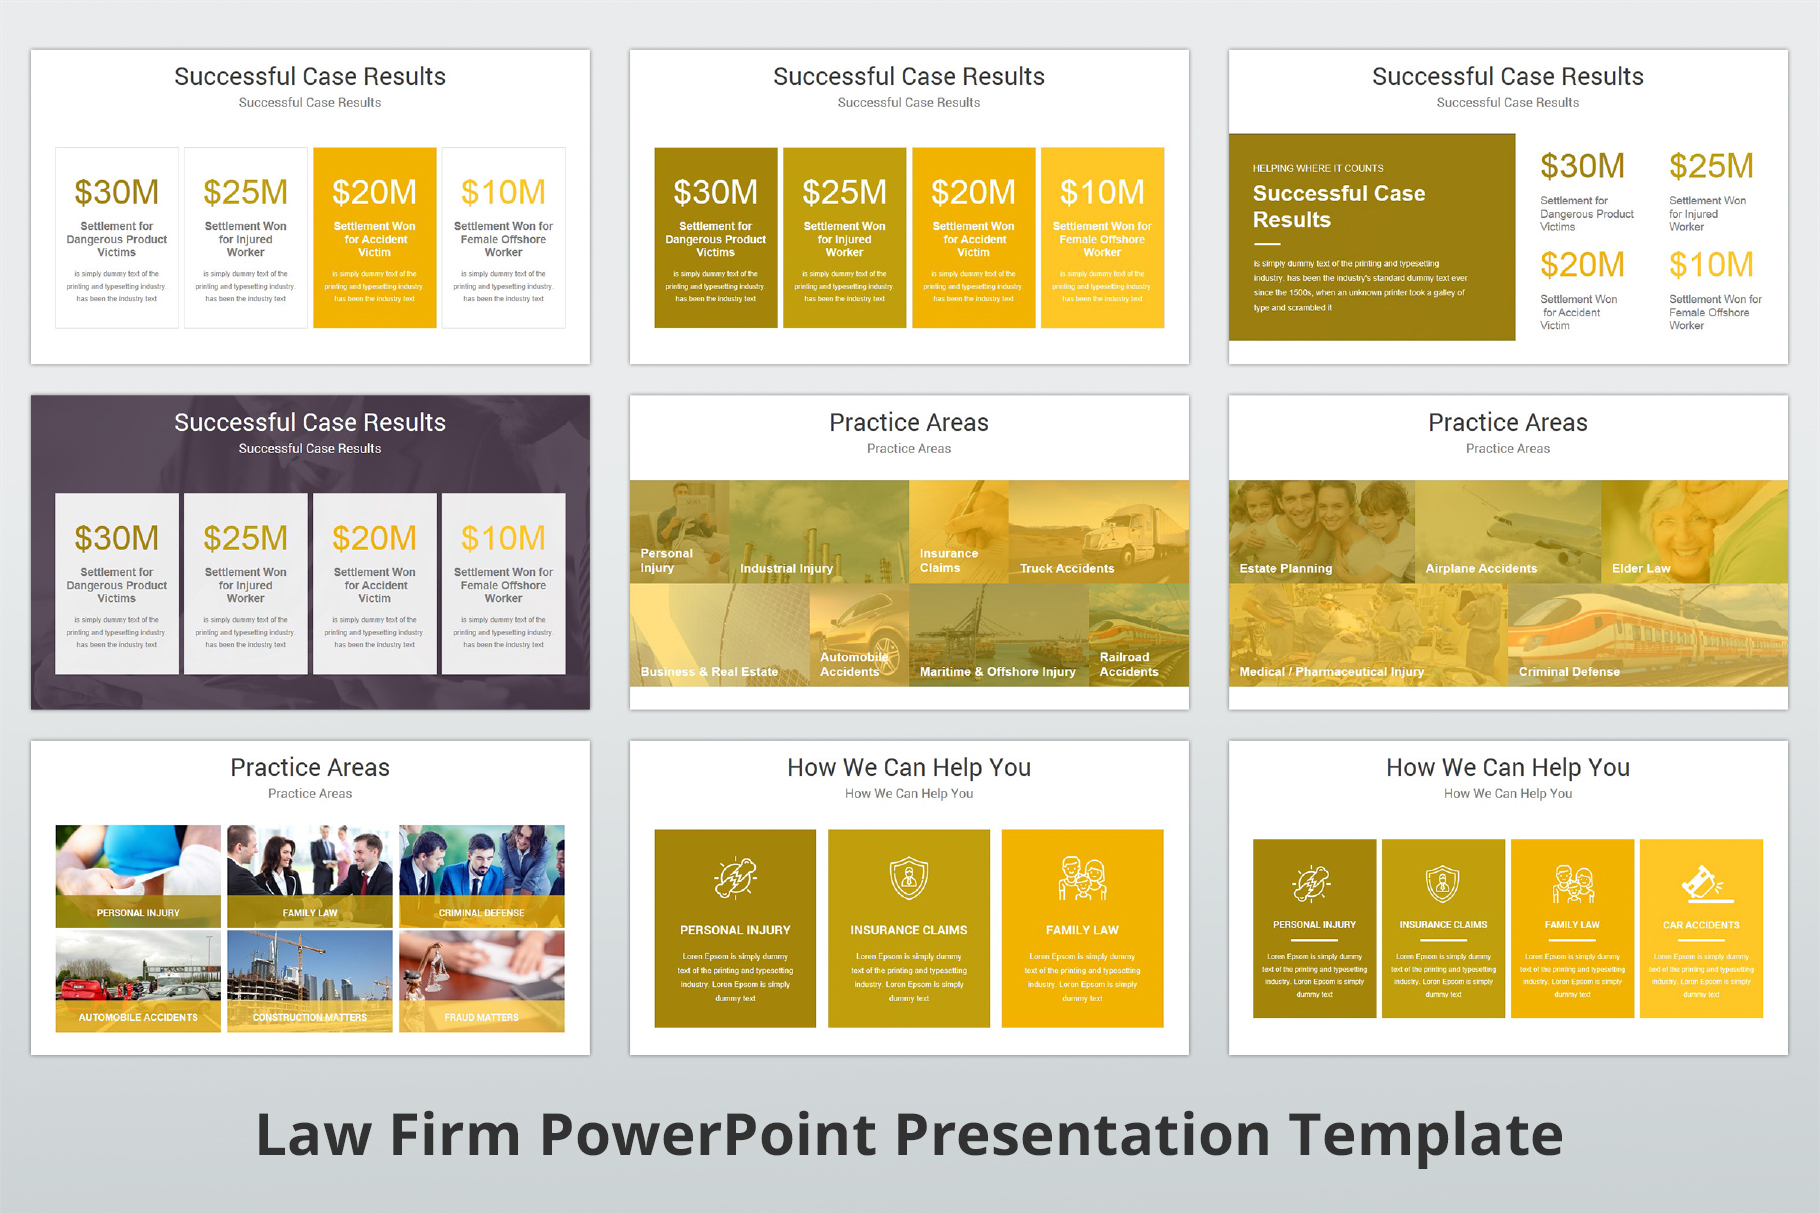 Law Firm PowerPoint Presentation Template example image 6